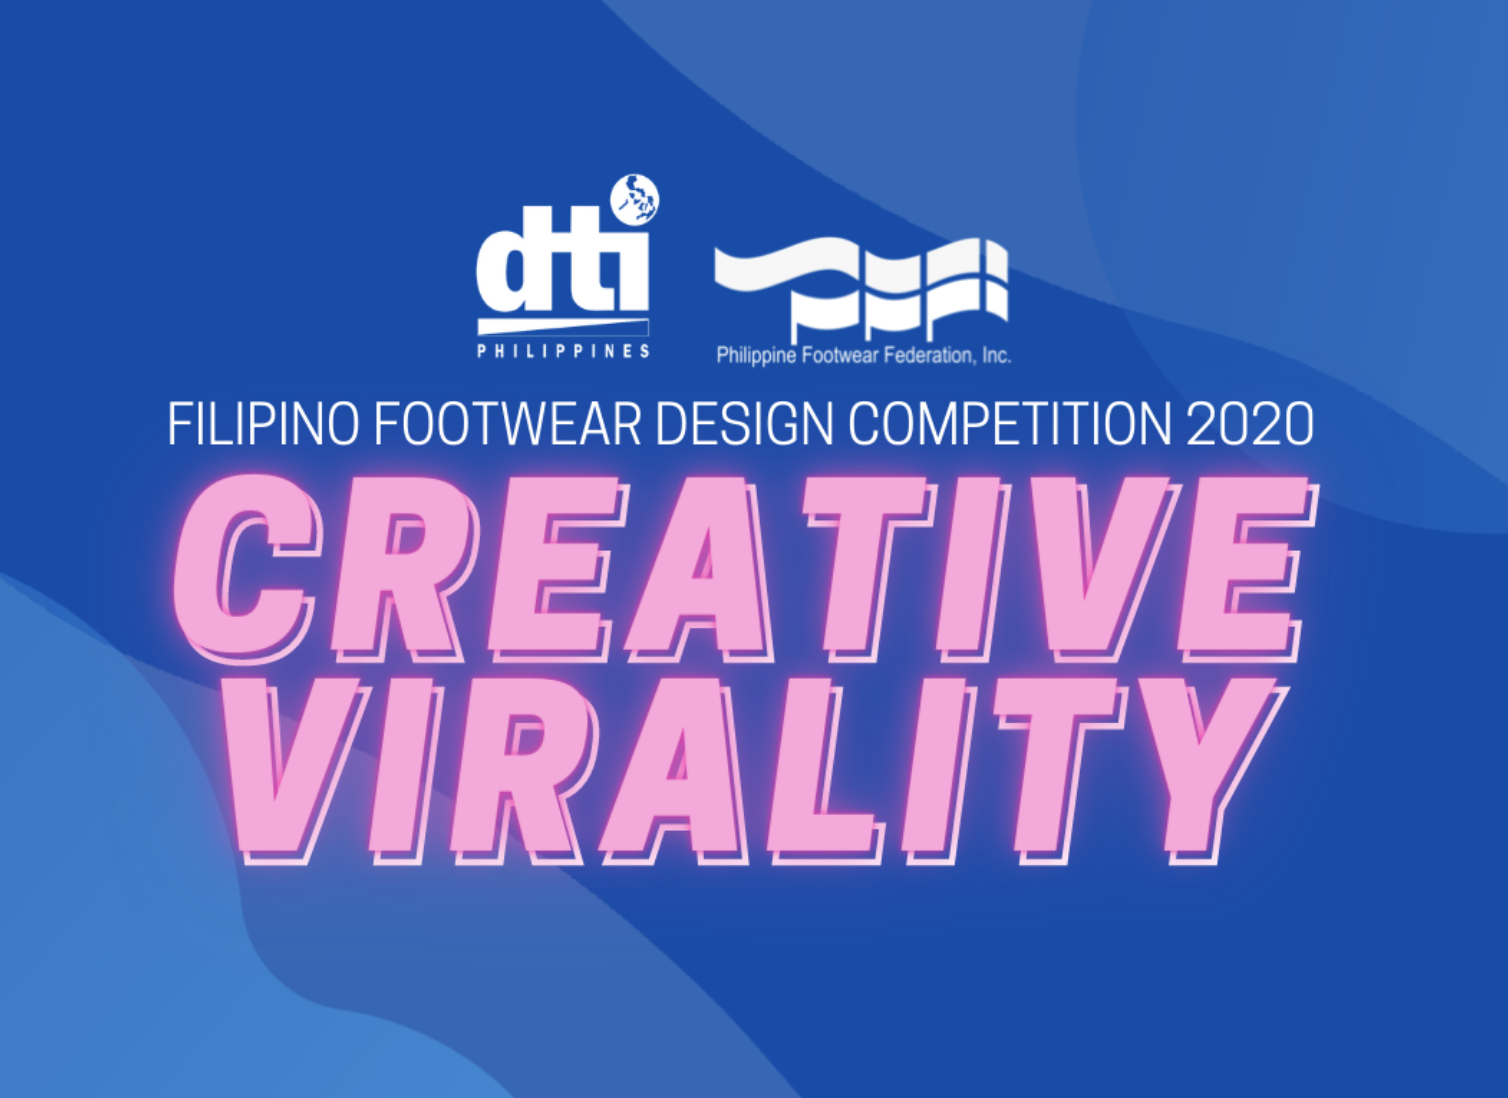 7th Filipino Footwear Design Competition to uncover Pinoy's ingenuity